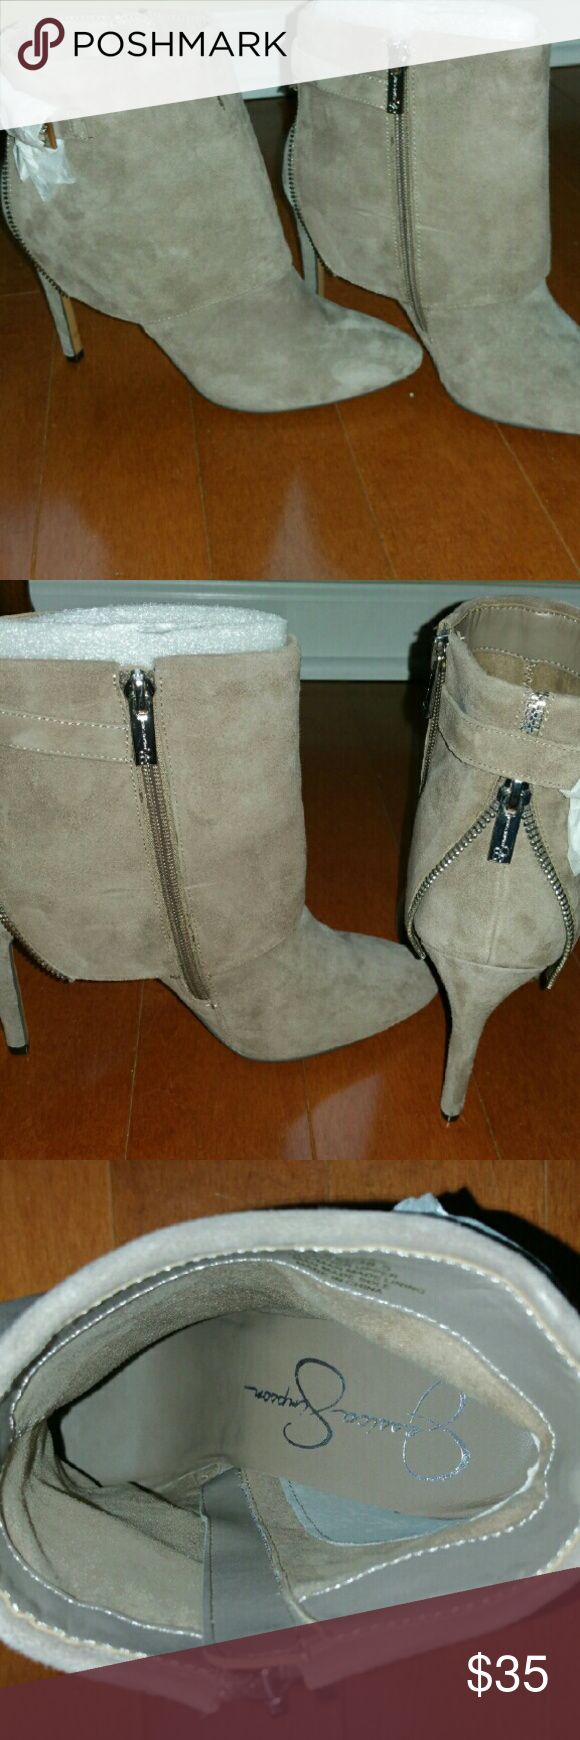 Fabulous Jessica Simpson boots! Creamy/tan color. Zippers on the back and clasps on the side!  Brand new! Love these boots, they just don't fit! Super cute with skinny jeans! Jessica Simpson Shoes Ankle Boots & Booties